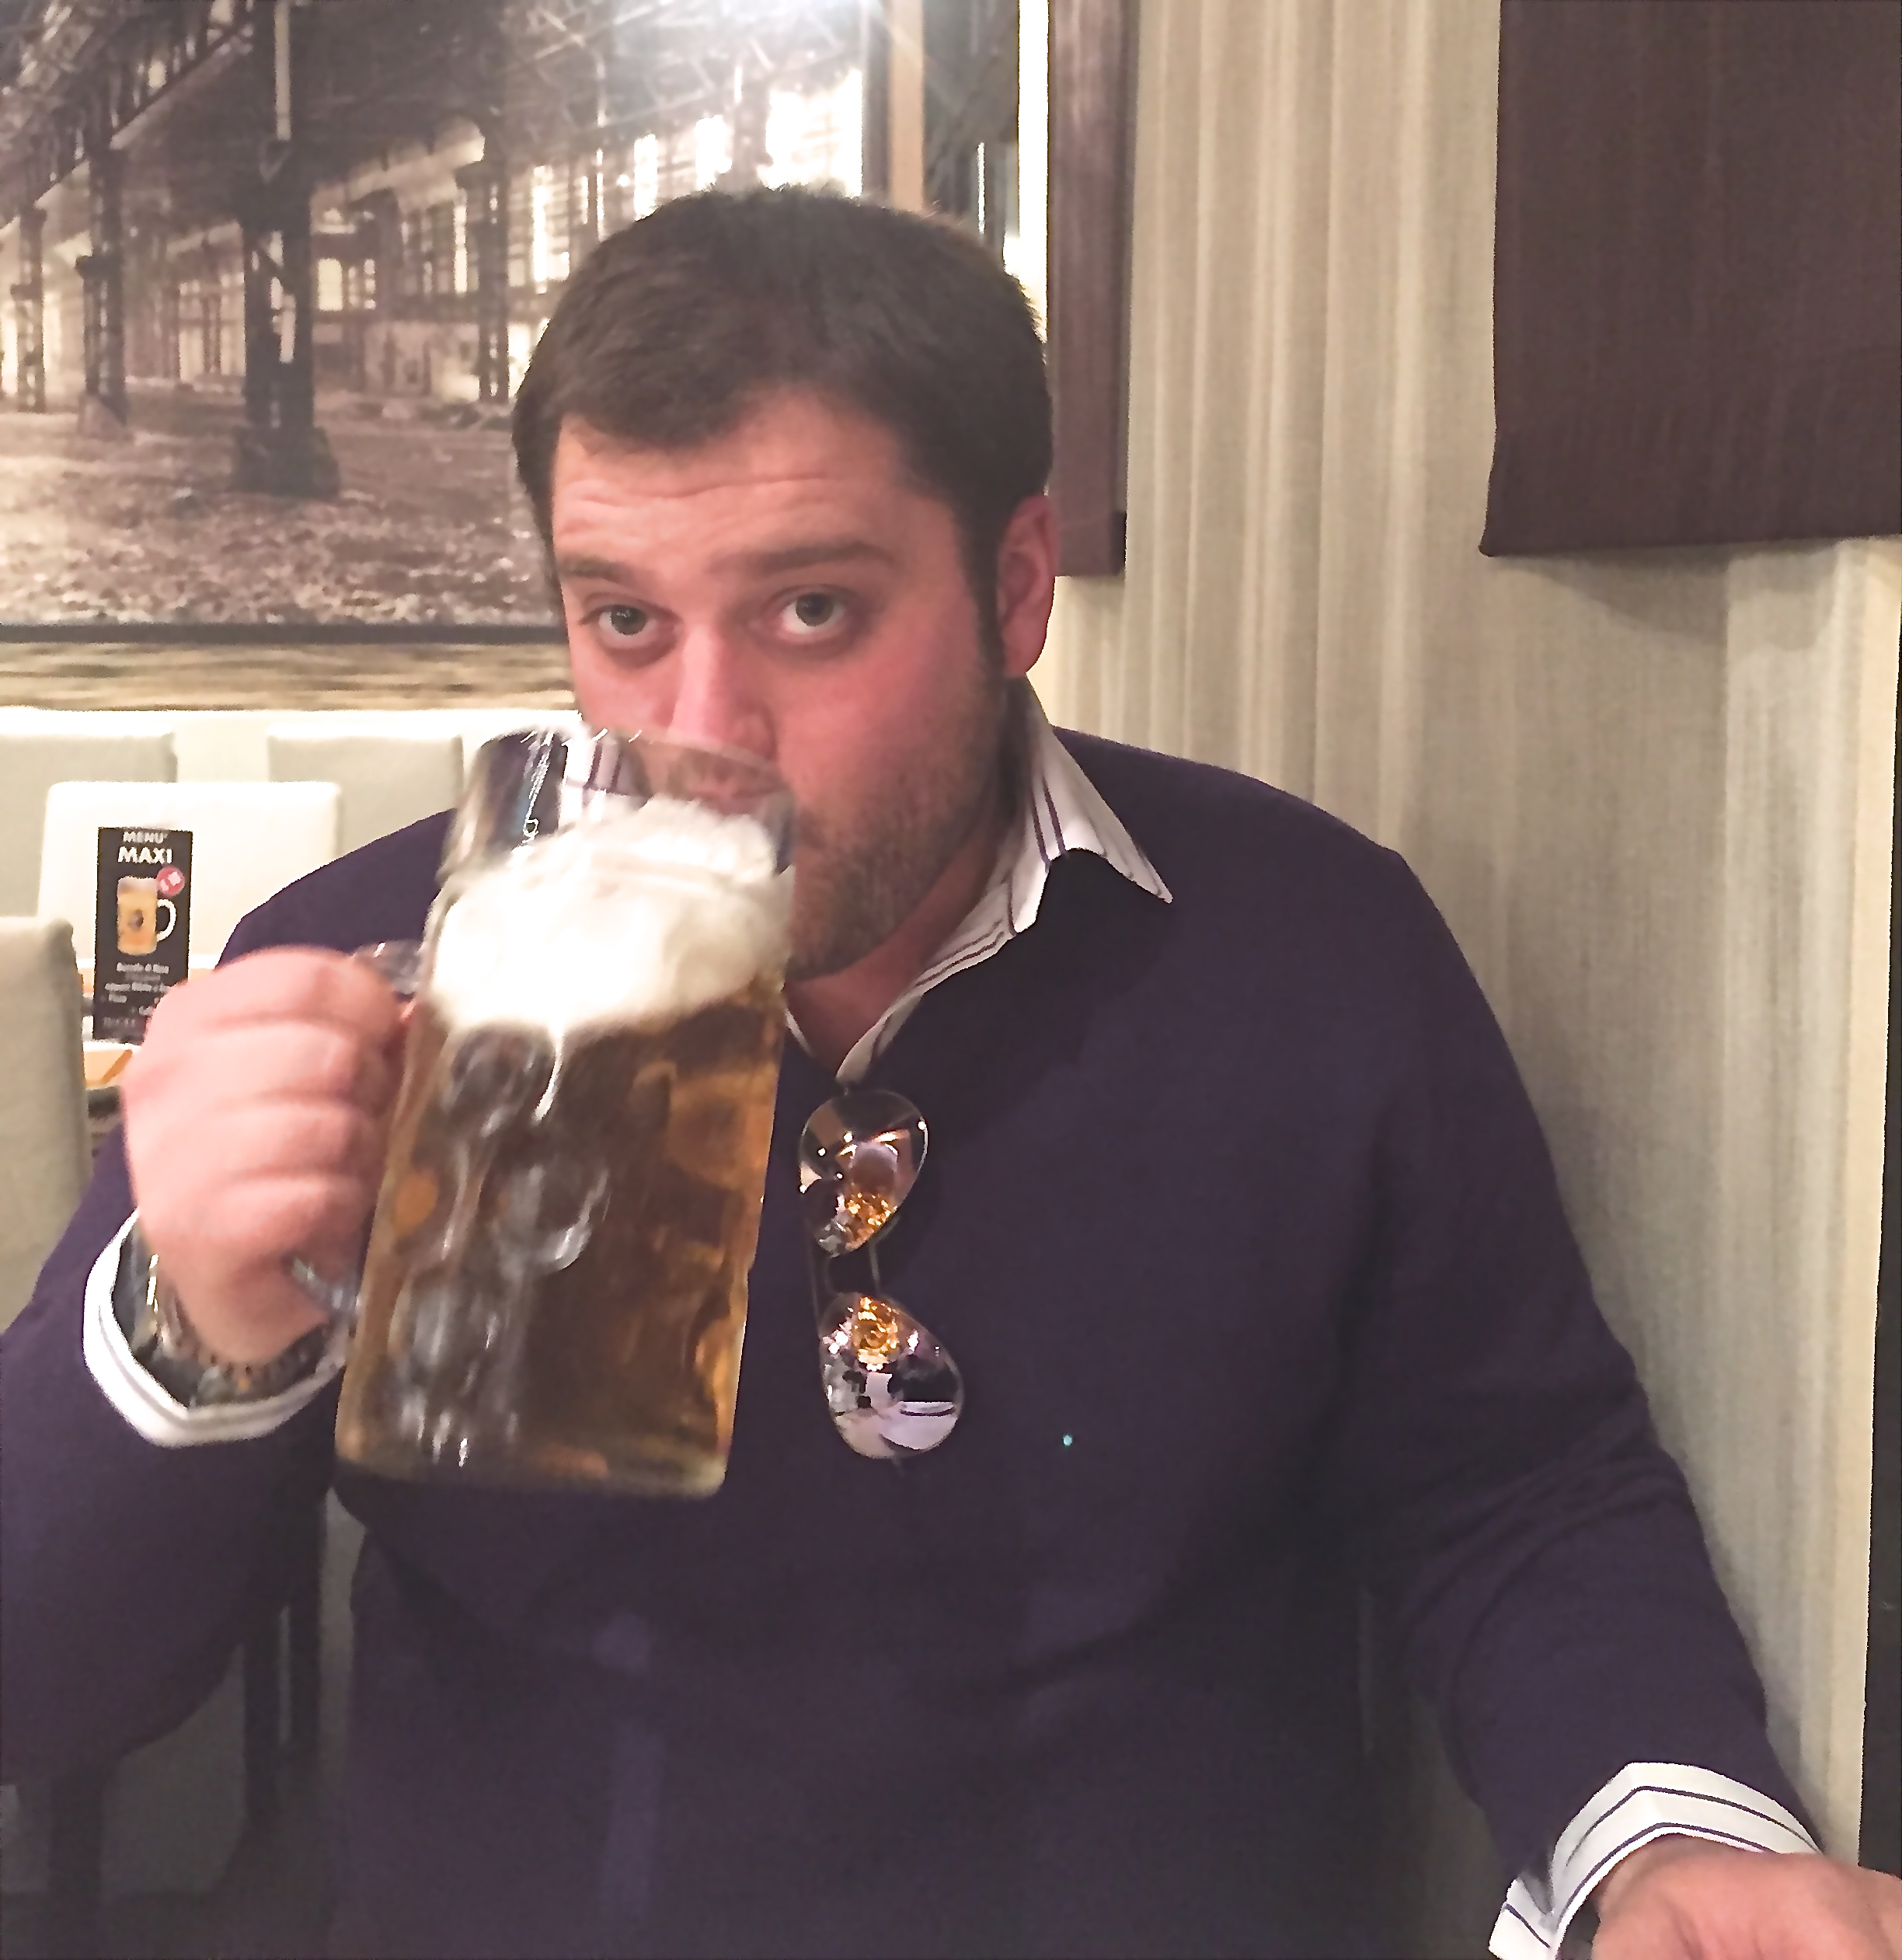 Someone get this man a beer... a giant beer. Chris took me to an all you can eat Italian pizza restaurant, and talked about wanting to take my brother and cousin there... start stretching your stomachs now guys.